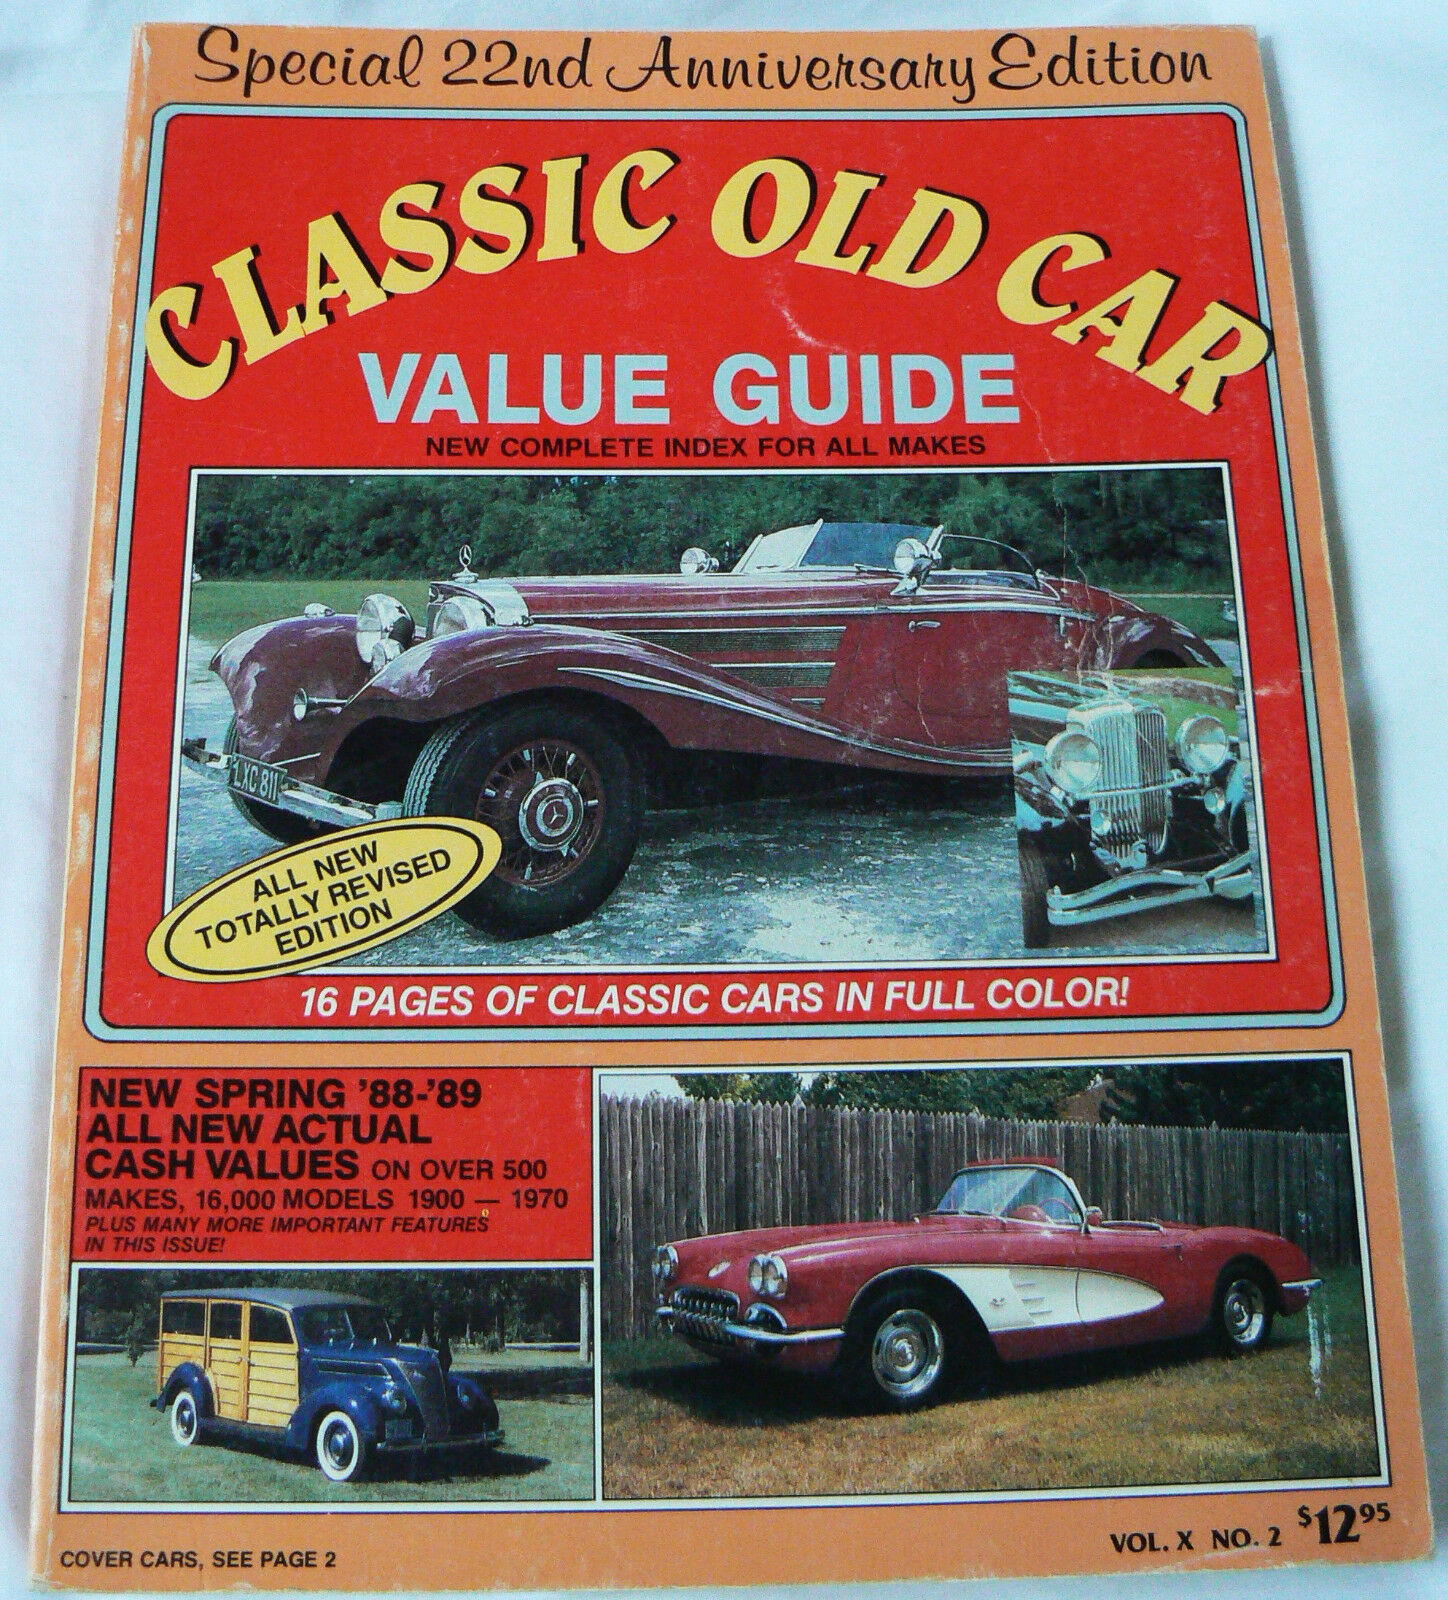 Modern Old Cars Price Guide Values Elaboration - Classic Cars Ideas ...